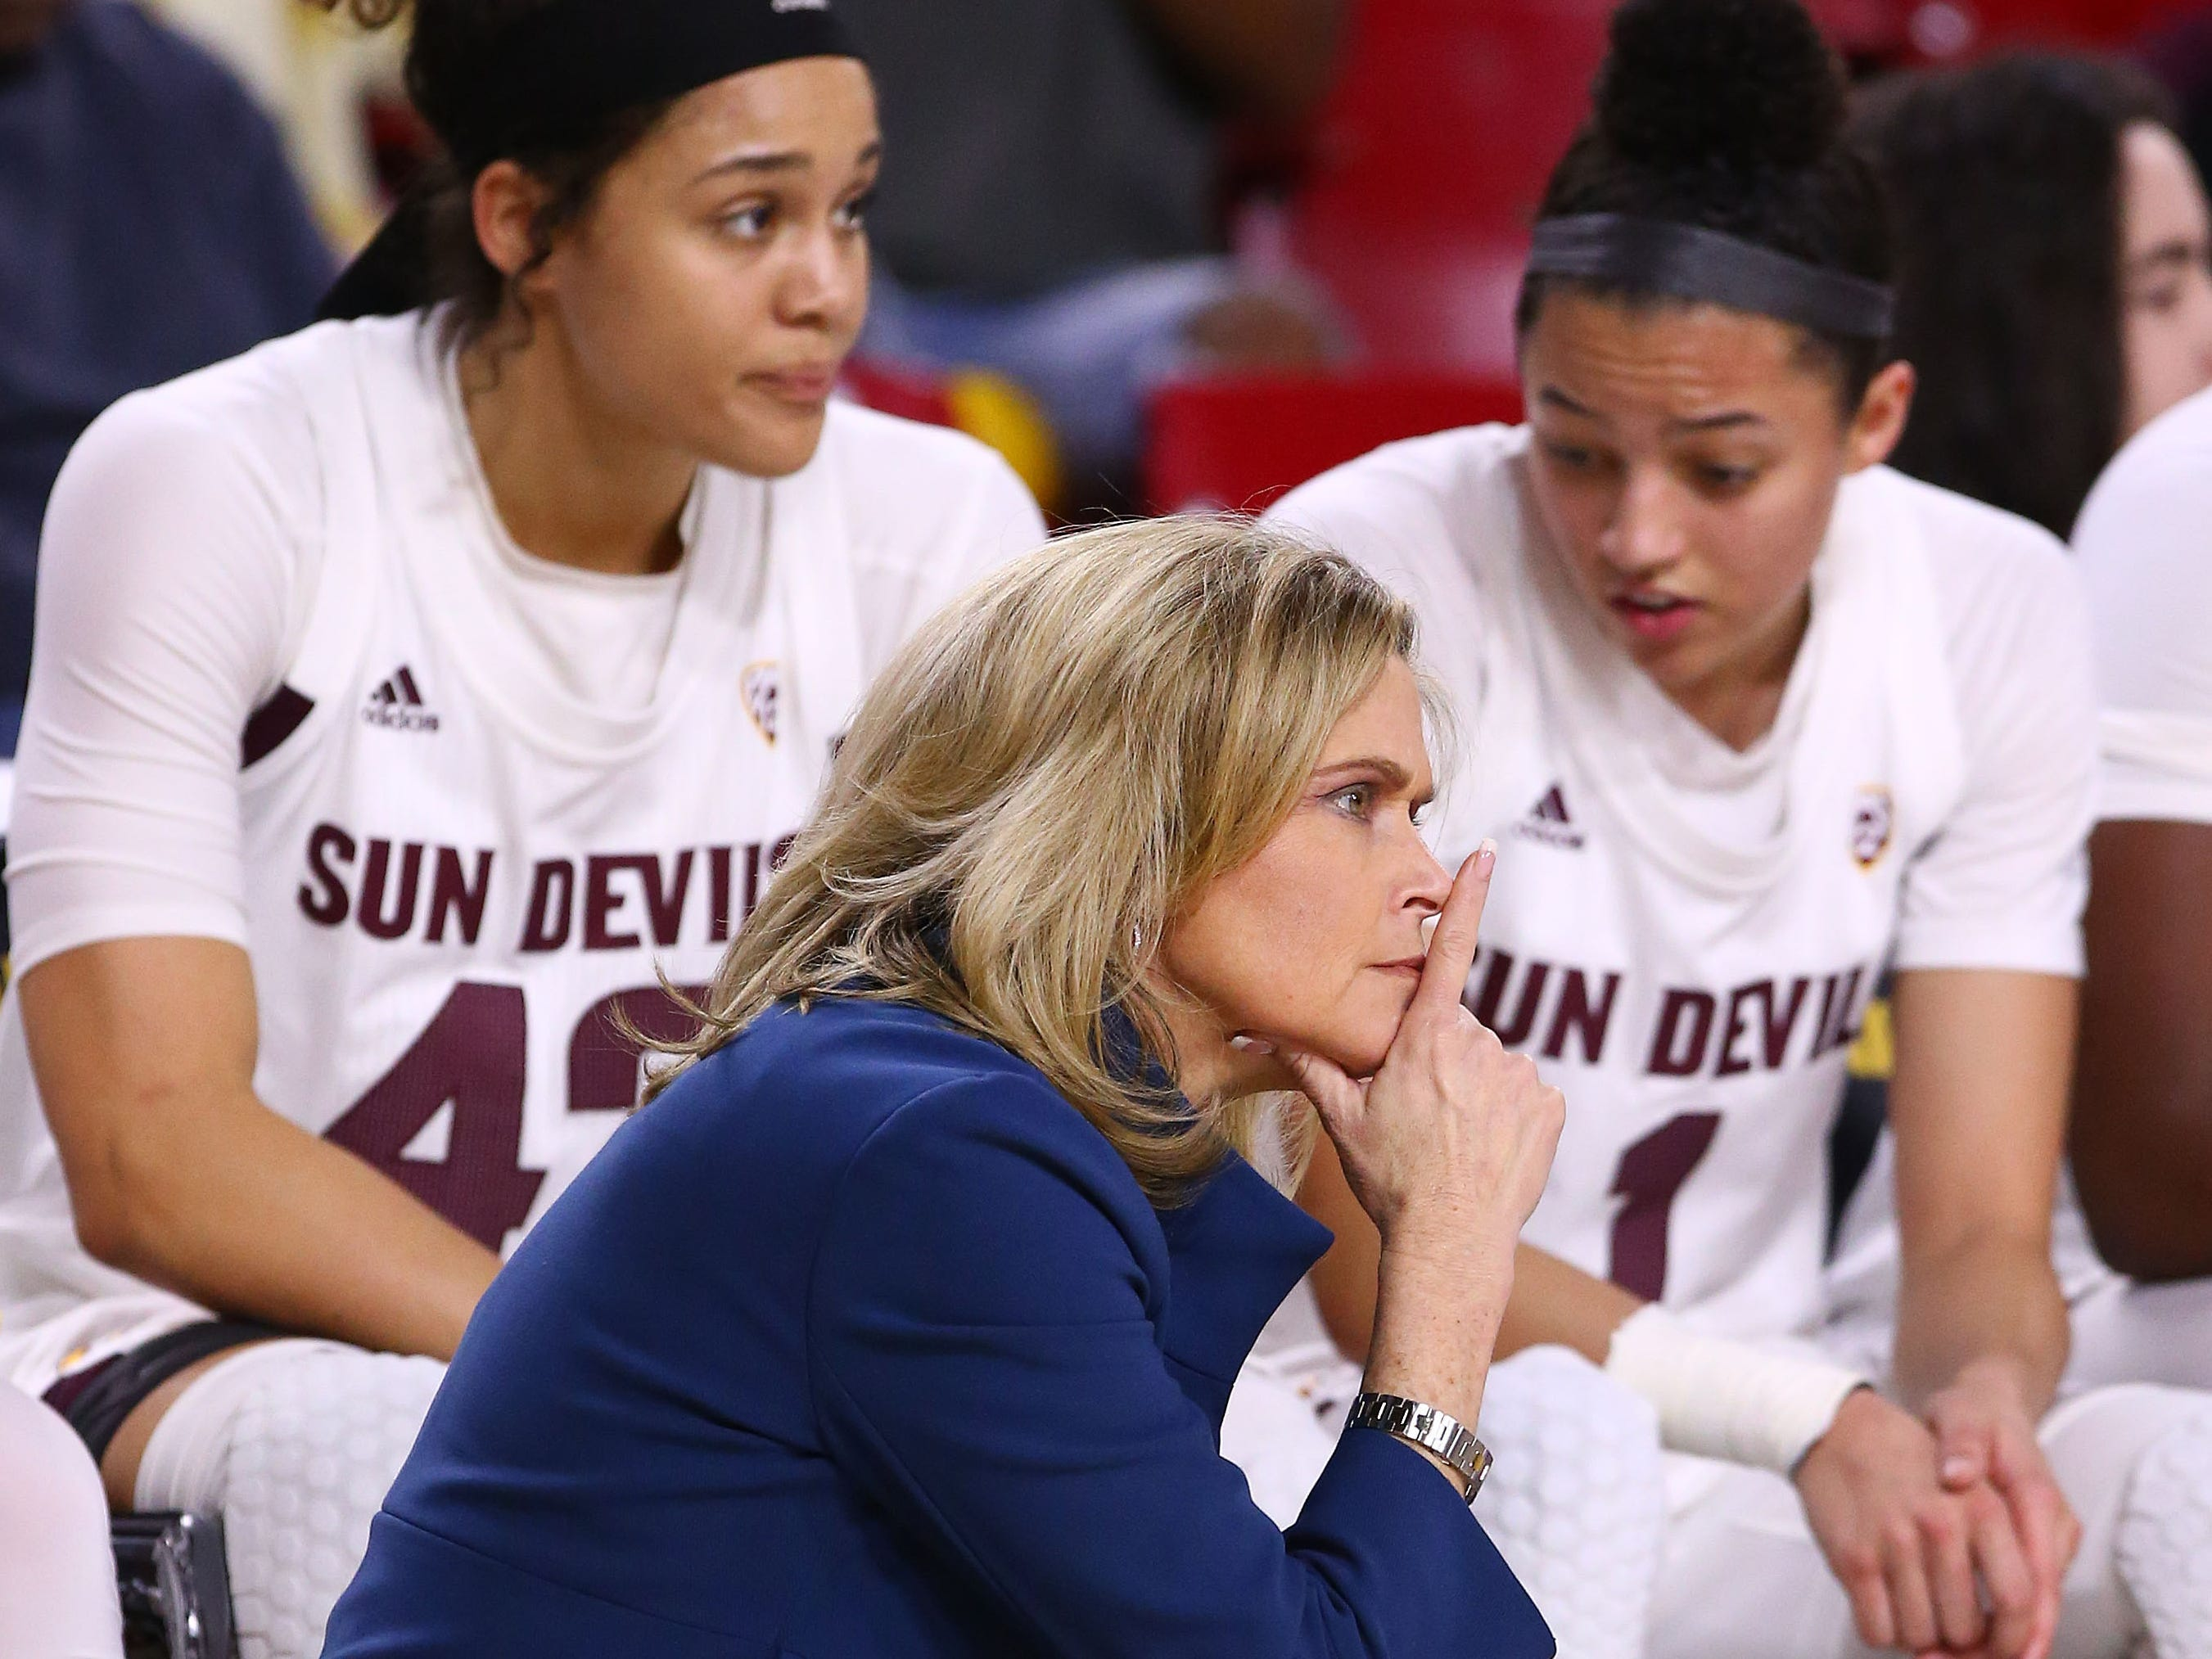 Arizona State head coach Charli Turner Thorne against the Oregon Ducks in the second half on Mar. 3, 2019, at Wells Fargo Arena in Tempe, Ariz.